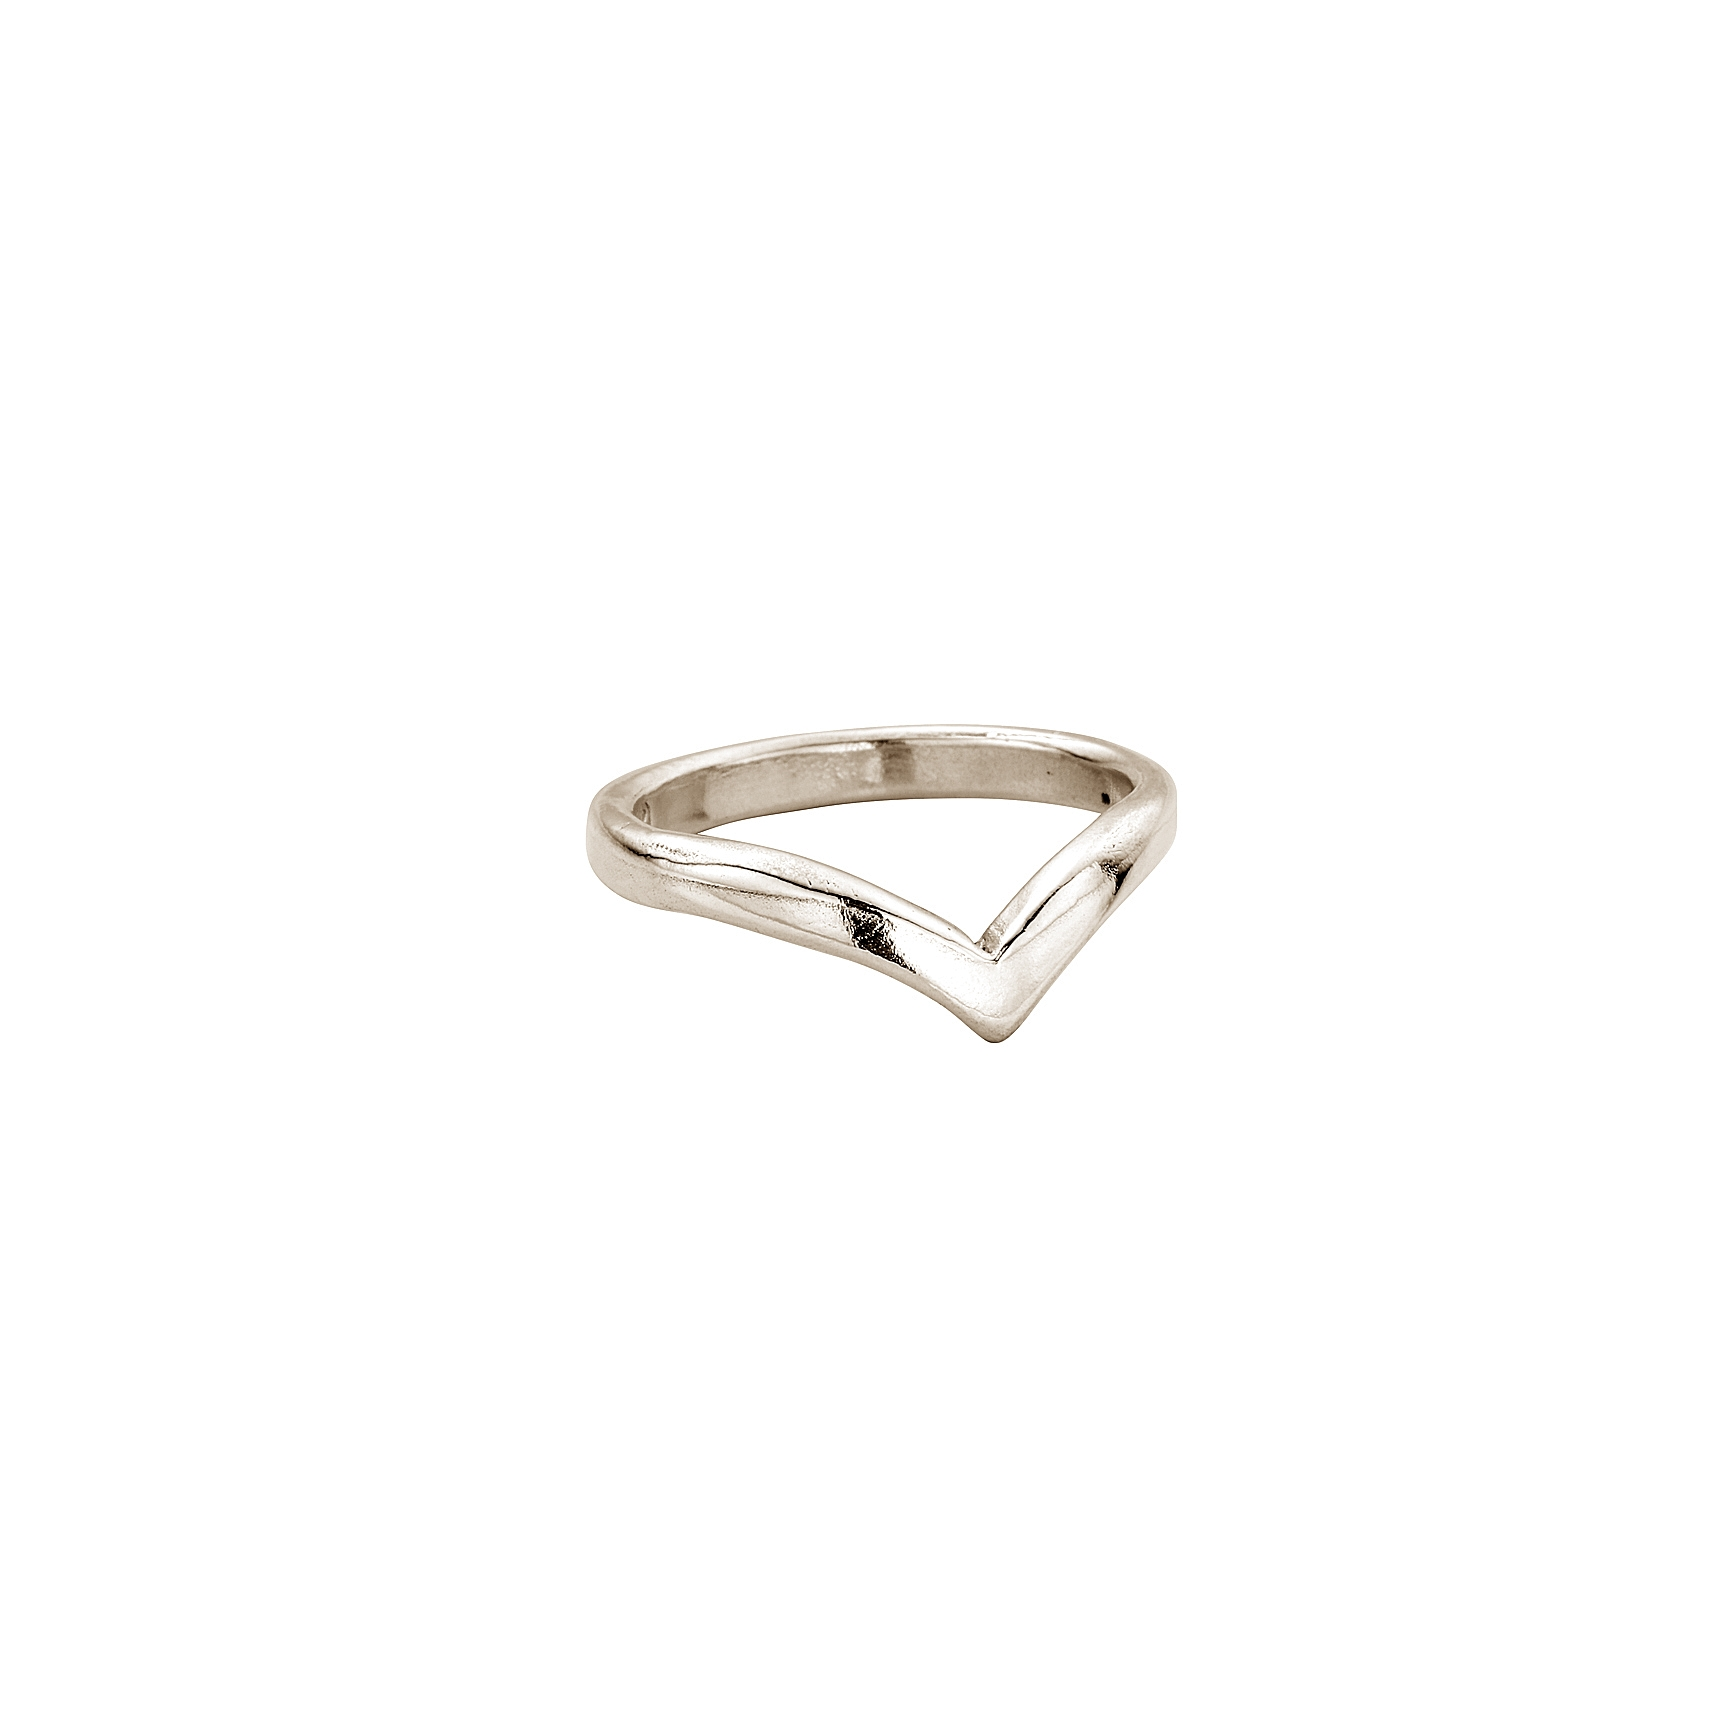 It is just an image of White Gold Ladies Wishbone Wedding Band